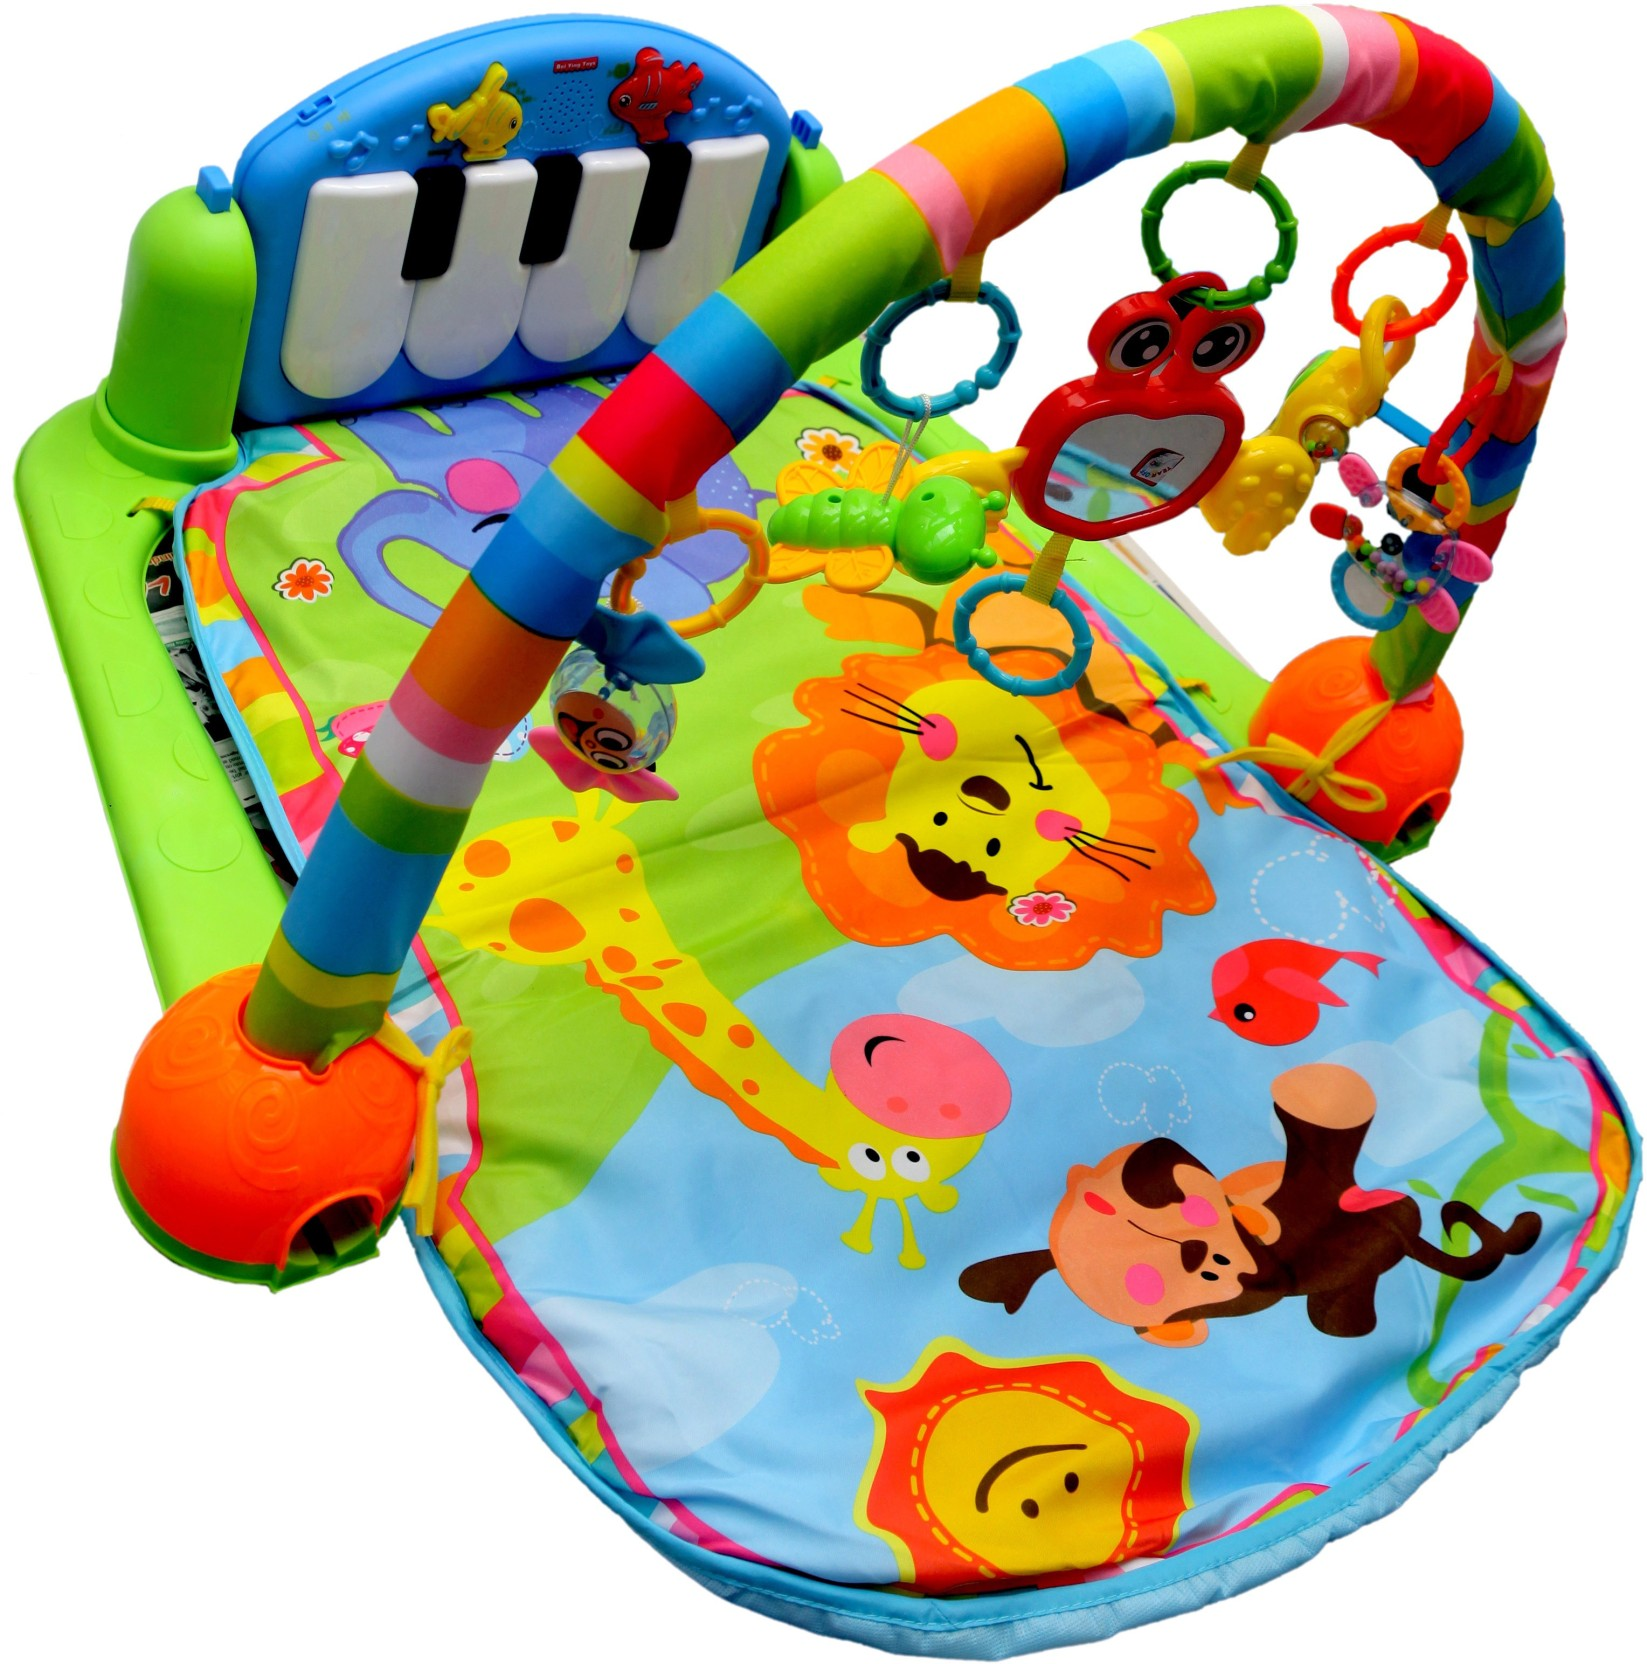 Bubble Hut Baby Grow Multifunction Soft Baby Play Mat Activity